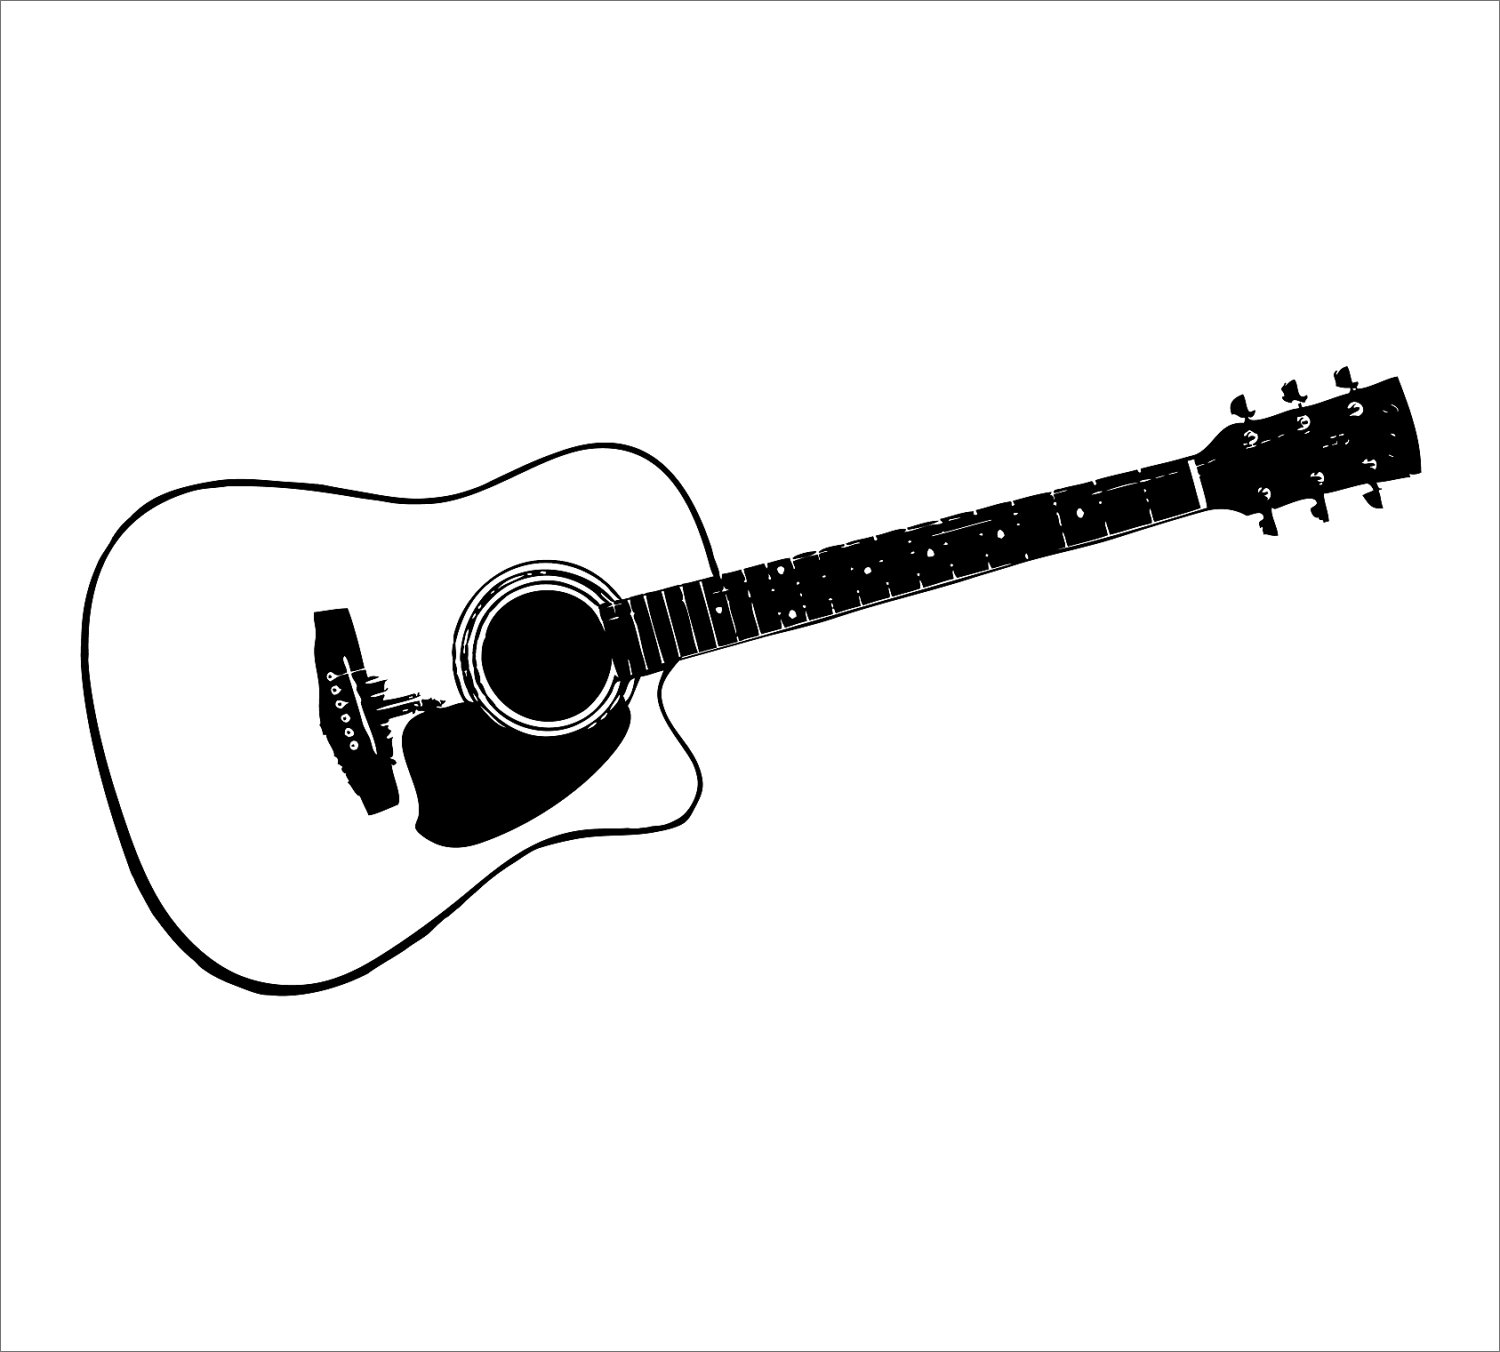 Free guitar clipart images clip download Free Acoustic Guitar Clipart, Download Free Clip Art, Free Clip Art ... clip download